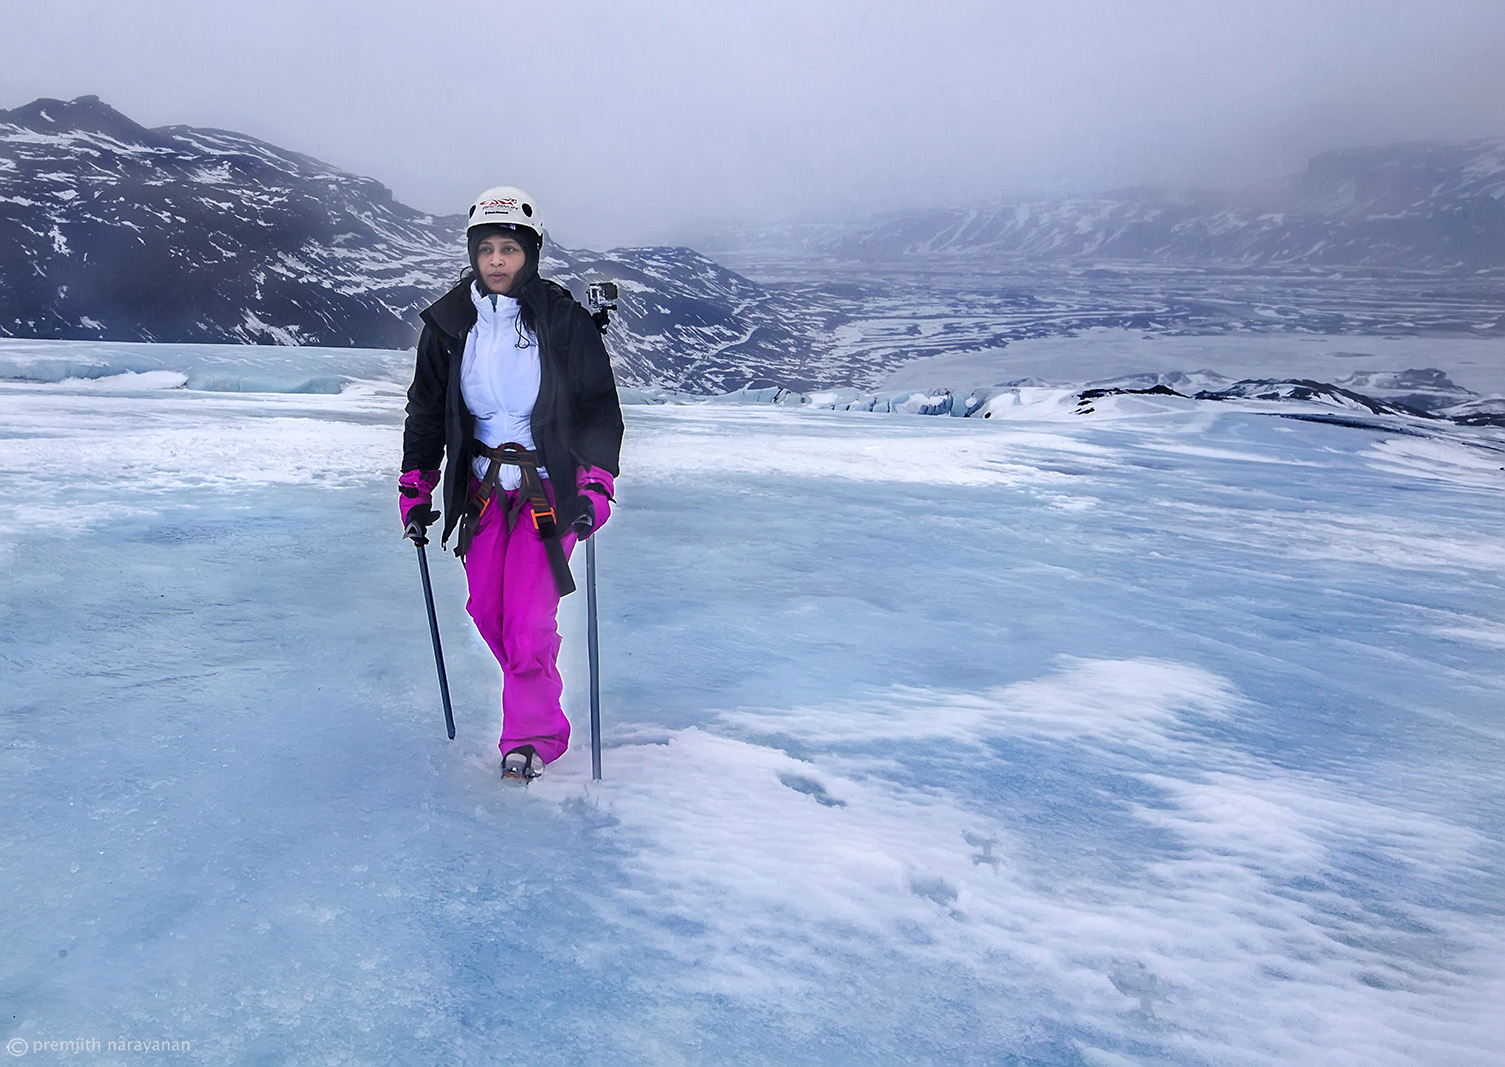 13. Ice climbing at the top of the Glacier